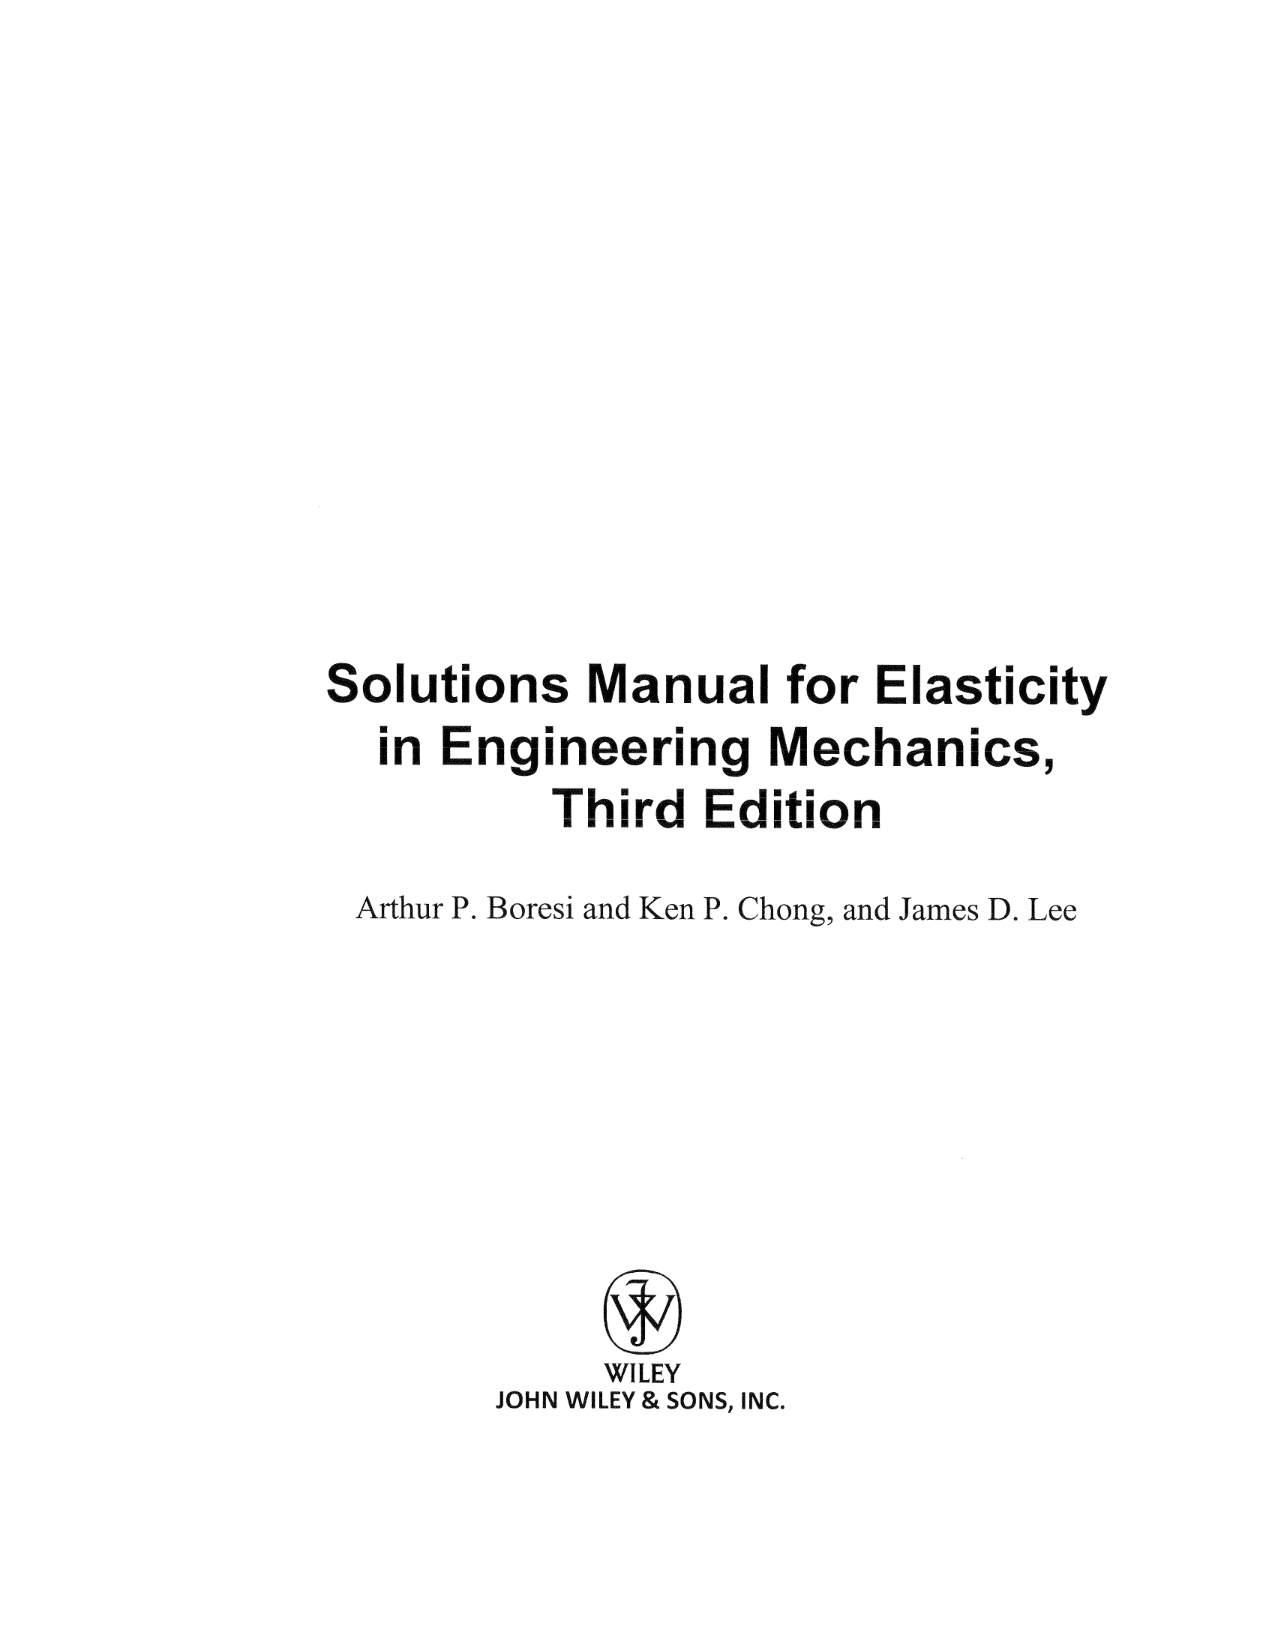 download free Elasticity in Engineering Mechanics 3rd edition Boresi solution manual & answers eBook pdf   Arthur P. Boresi, Kenneth P. Chong, James D. Lee